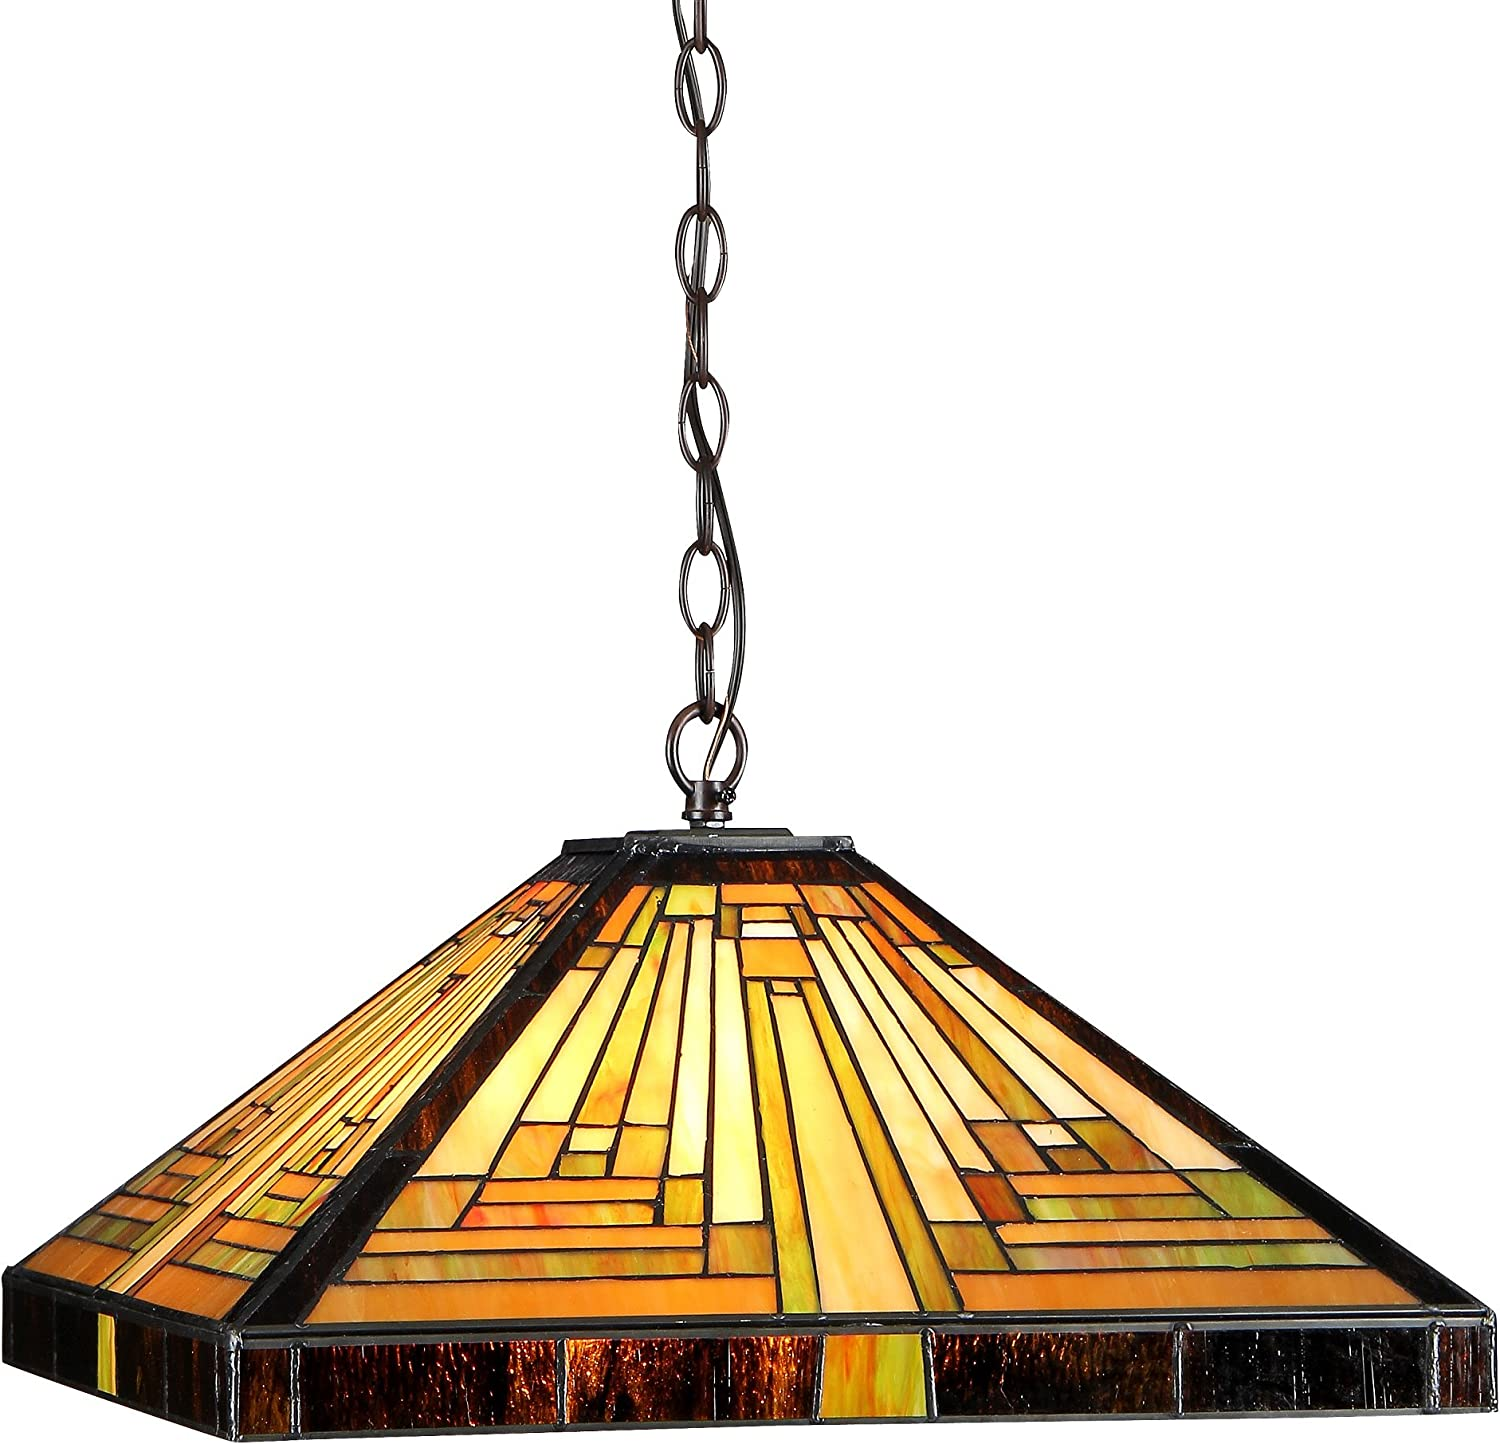 Chloe Lighting CH33359MR16-DH2 Innes Tiffany-Style Mission 2-Light Ceiling Pendant Fixture with Shade, 7.48 x 16.1 x 16.1 , Bronze